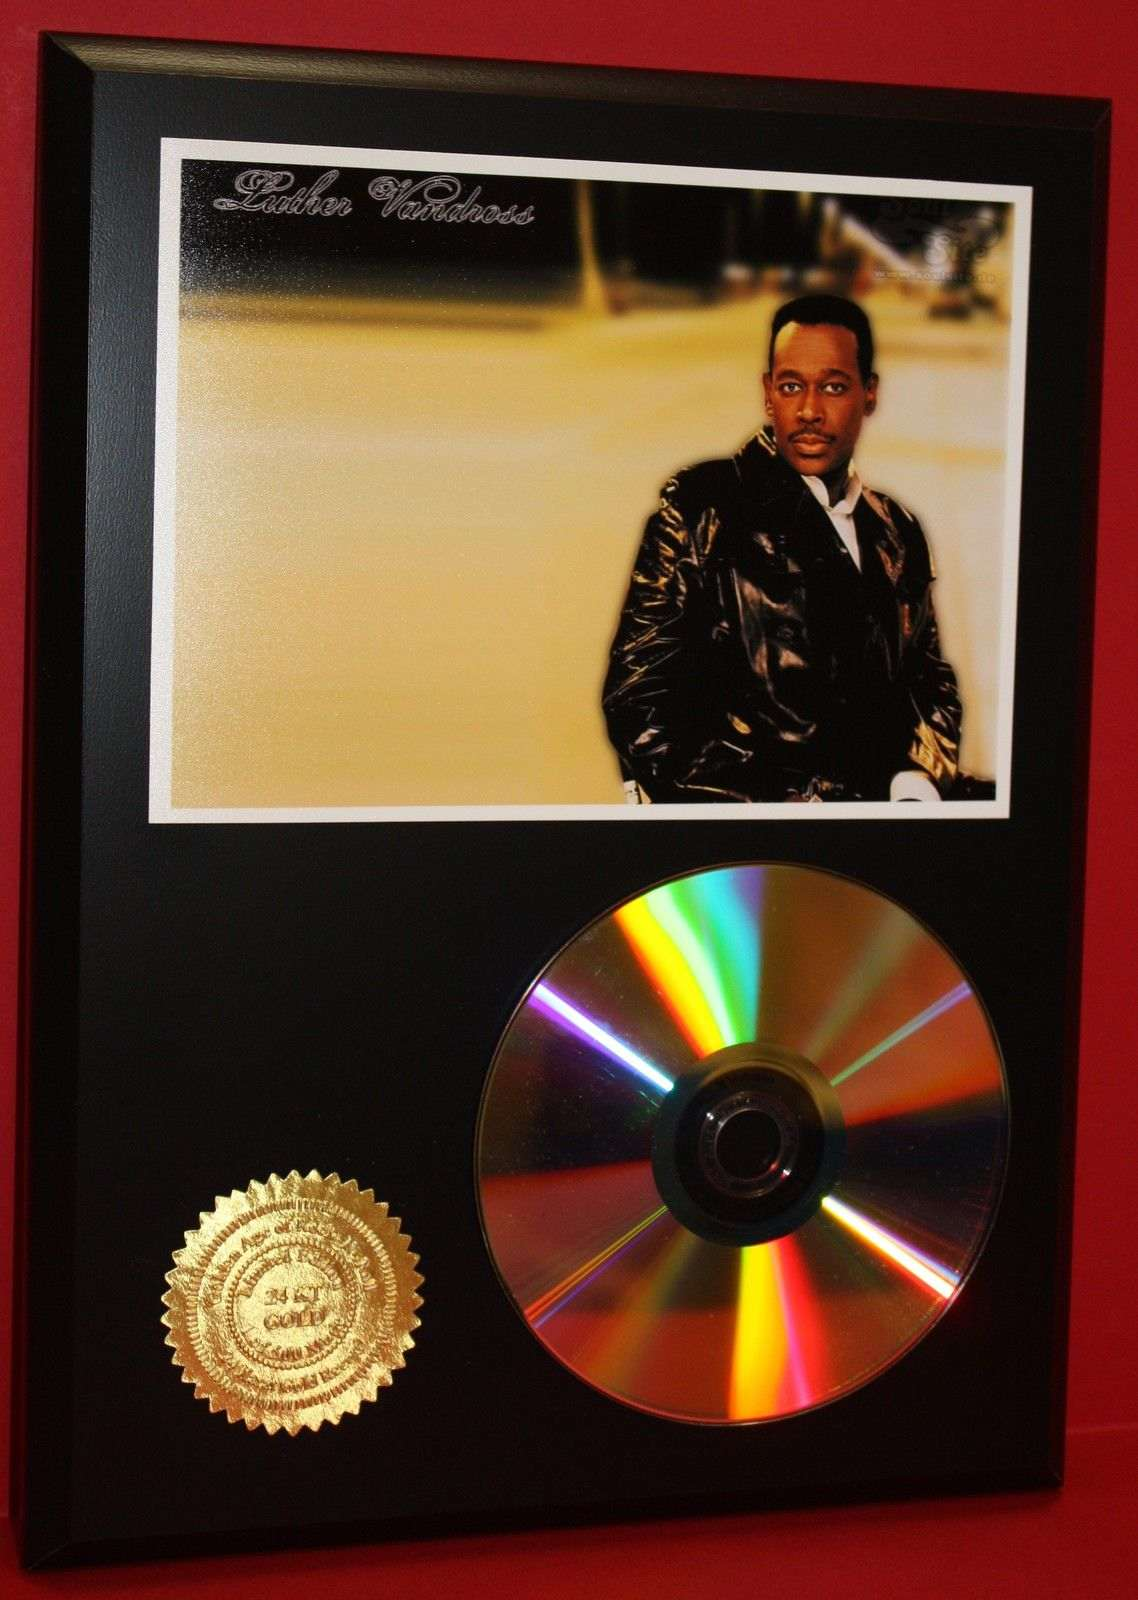 luther vandross 24kt gold cd disc collectible rare award quality plaque gift gold record. Black Bedroom Furniture Sets. Home Design Ideas